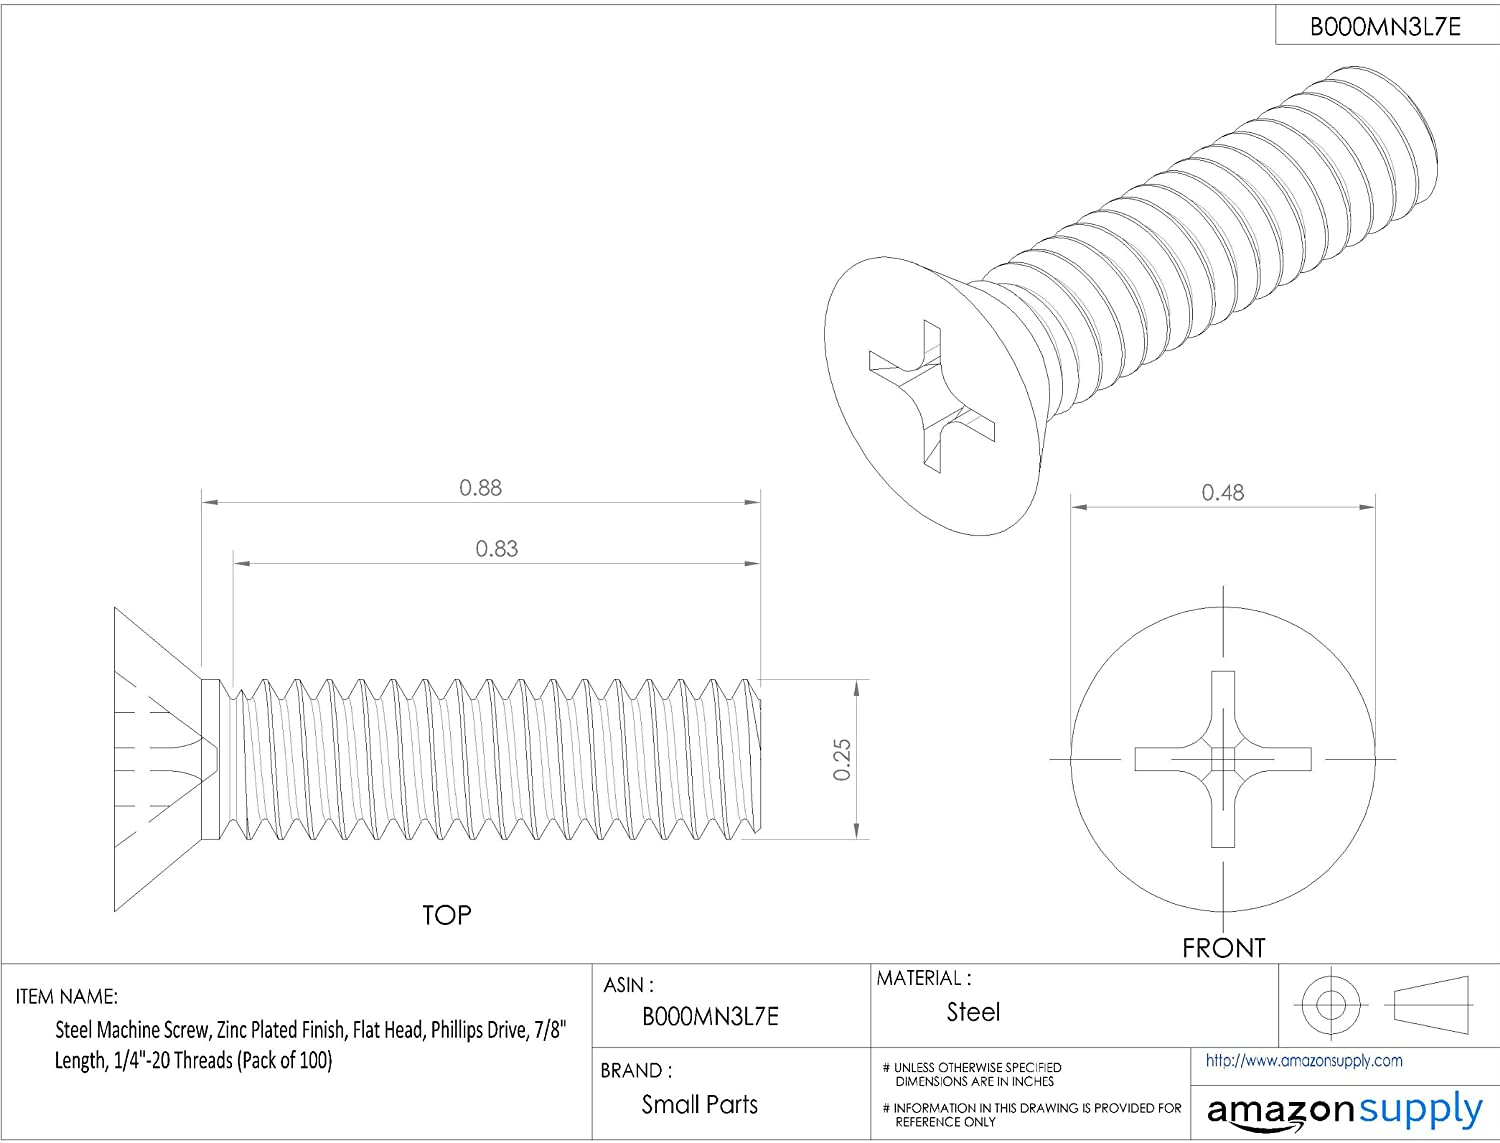 Pack of 100 Phillips Drive Steel Machine Screw 1//4-20 Threads 7//8 Length Zinc Plated Finish Flat Head